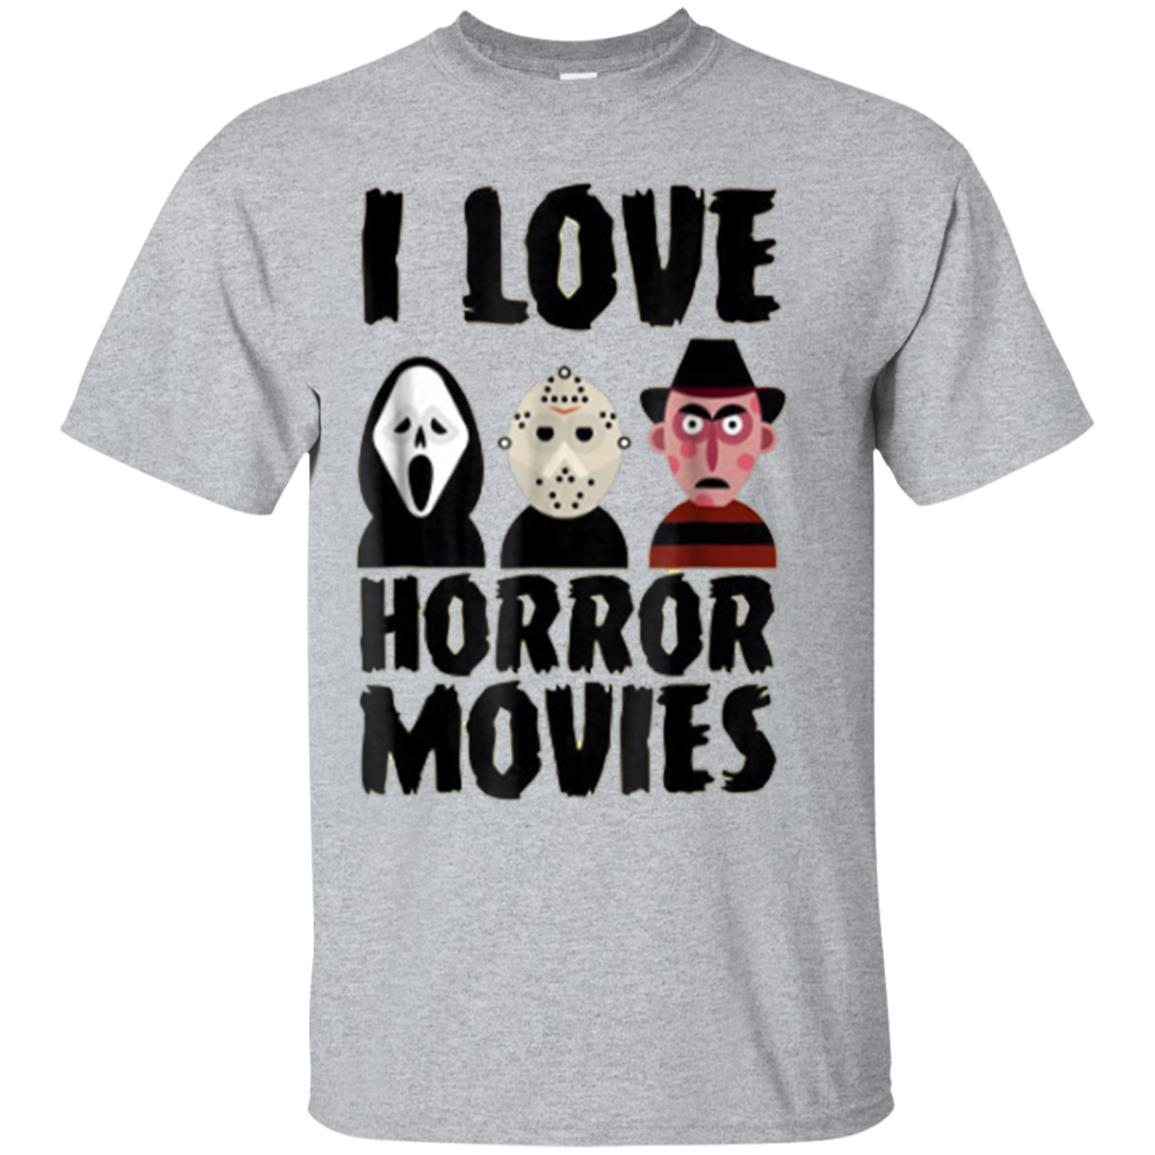 I Love Horror Movies T-Shirt For Men Women and Kids 99promocode